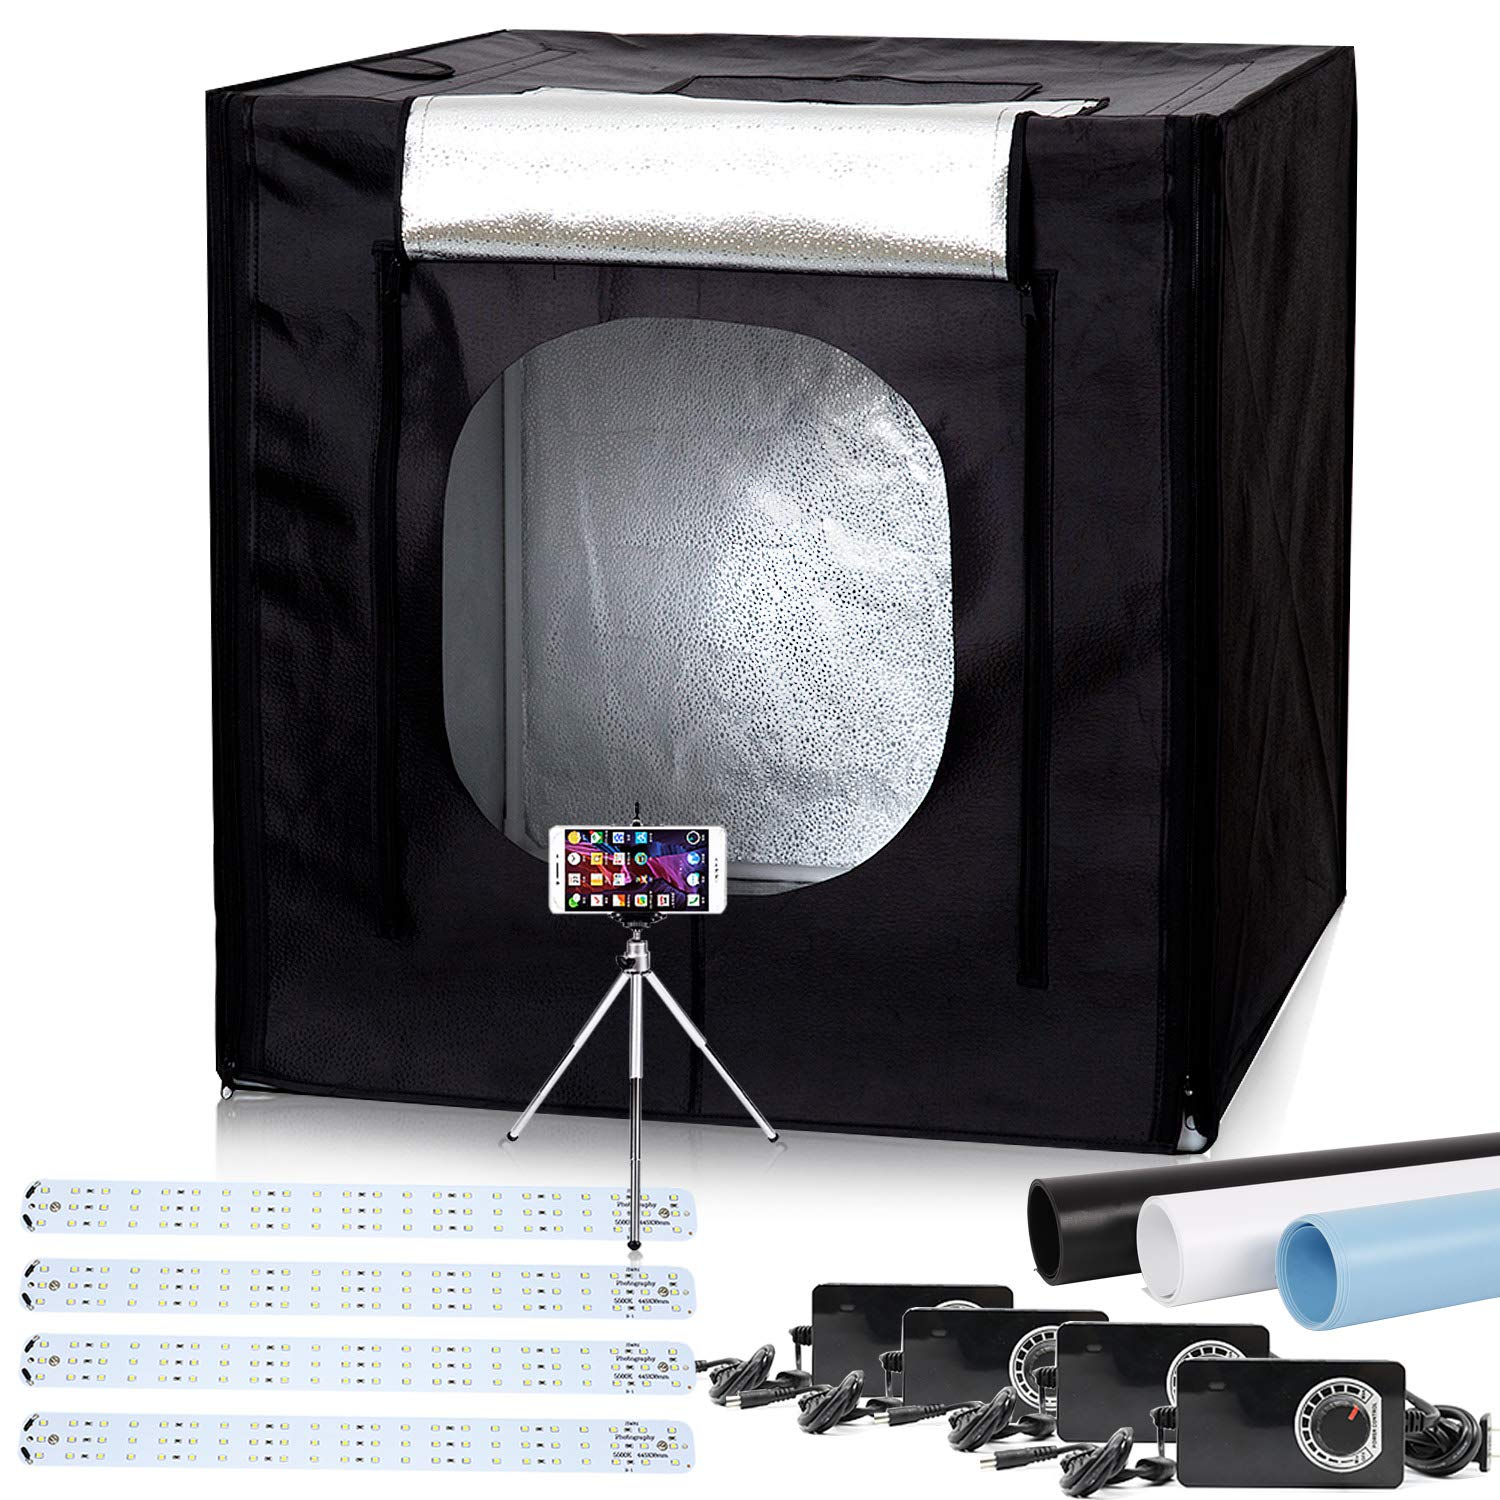 40''x40''x40'' LED Large Photography Shooting Tents 384pcs 5500K Lights Cube Box Tents Kit for Photo Studio Lighting with Dimmer Adapter,Mini Tripod and 3 Colors PVC Backgrounds in Carrying Bag by Konseen (Image #1)